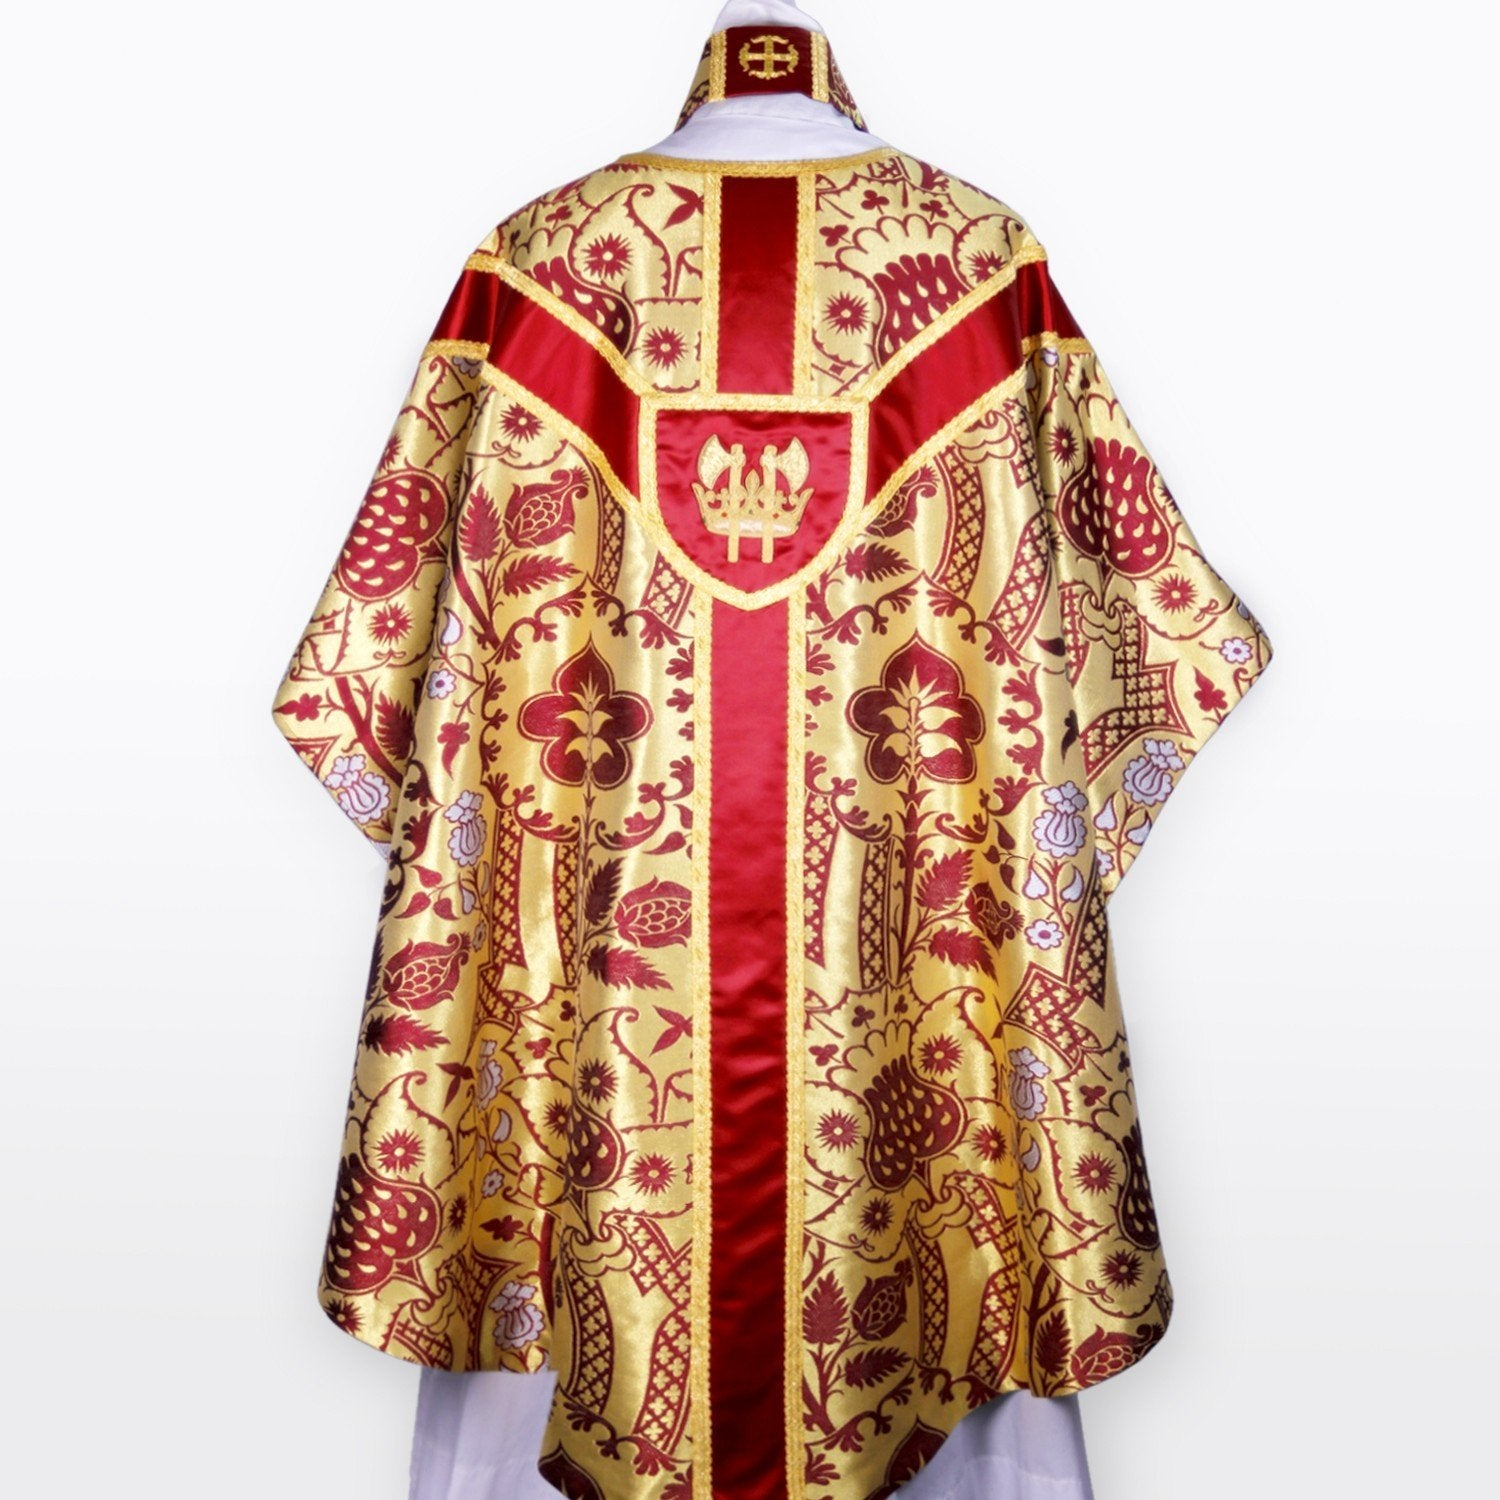 Full Gothic Chasuble in Red/White/Gold Comper Strawberry - Watts & Co. (international)